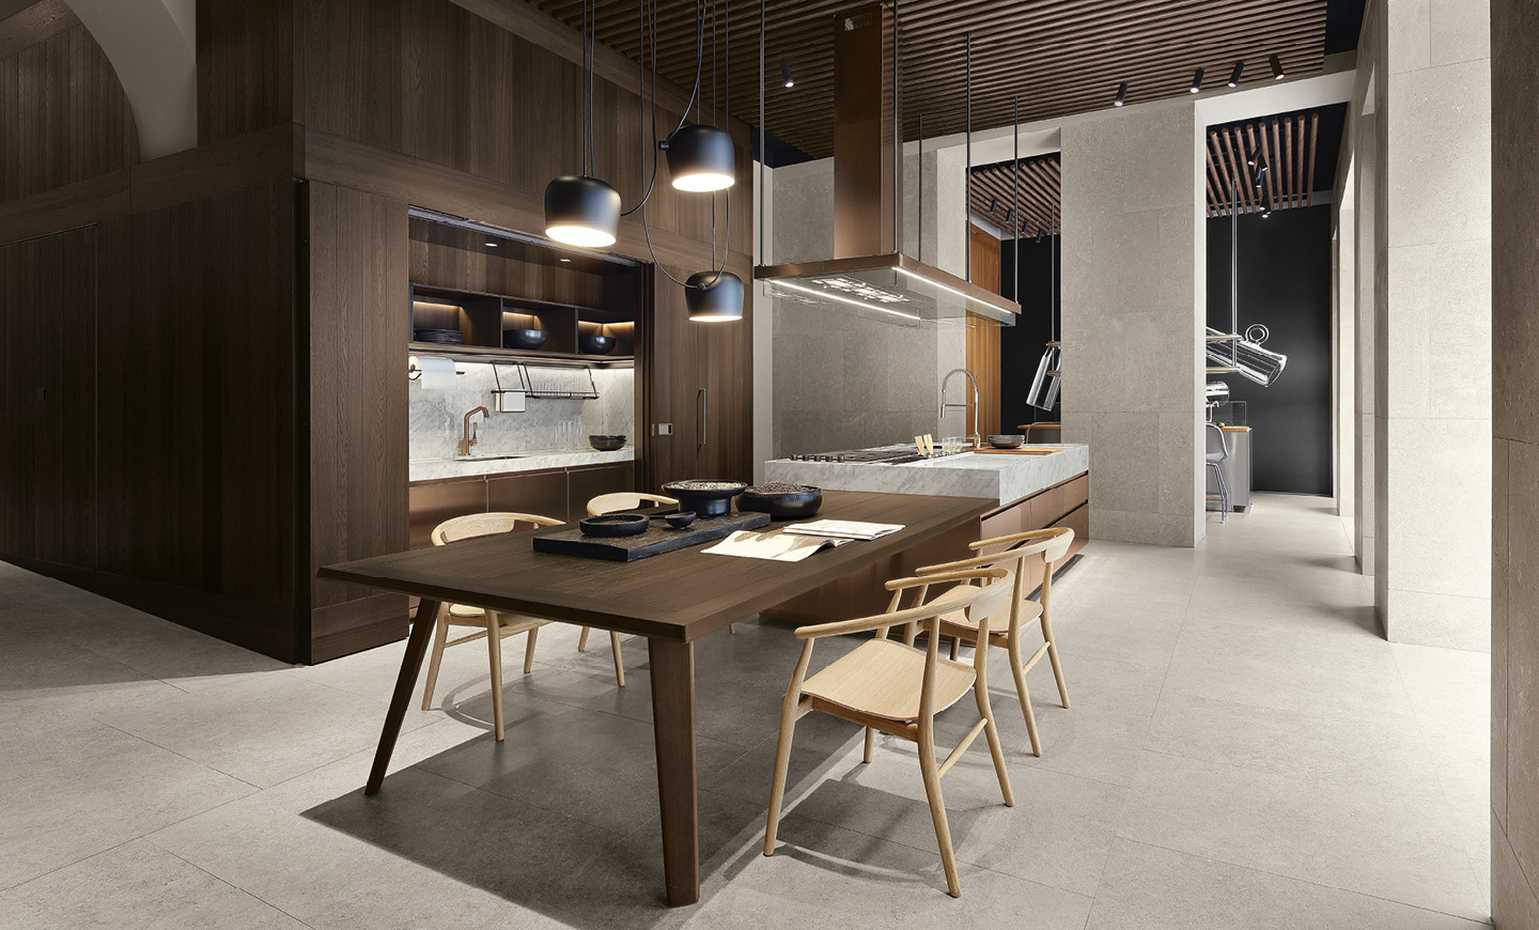 Convivium by Arclinea product image 1